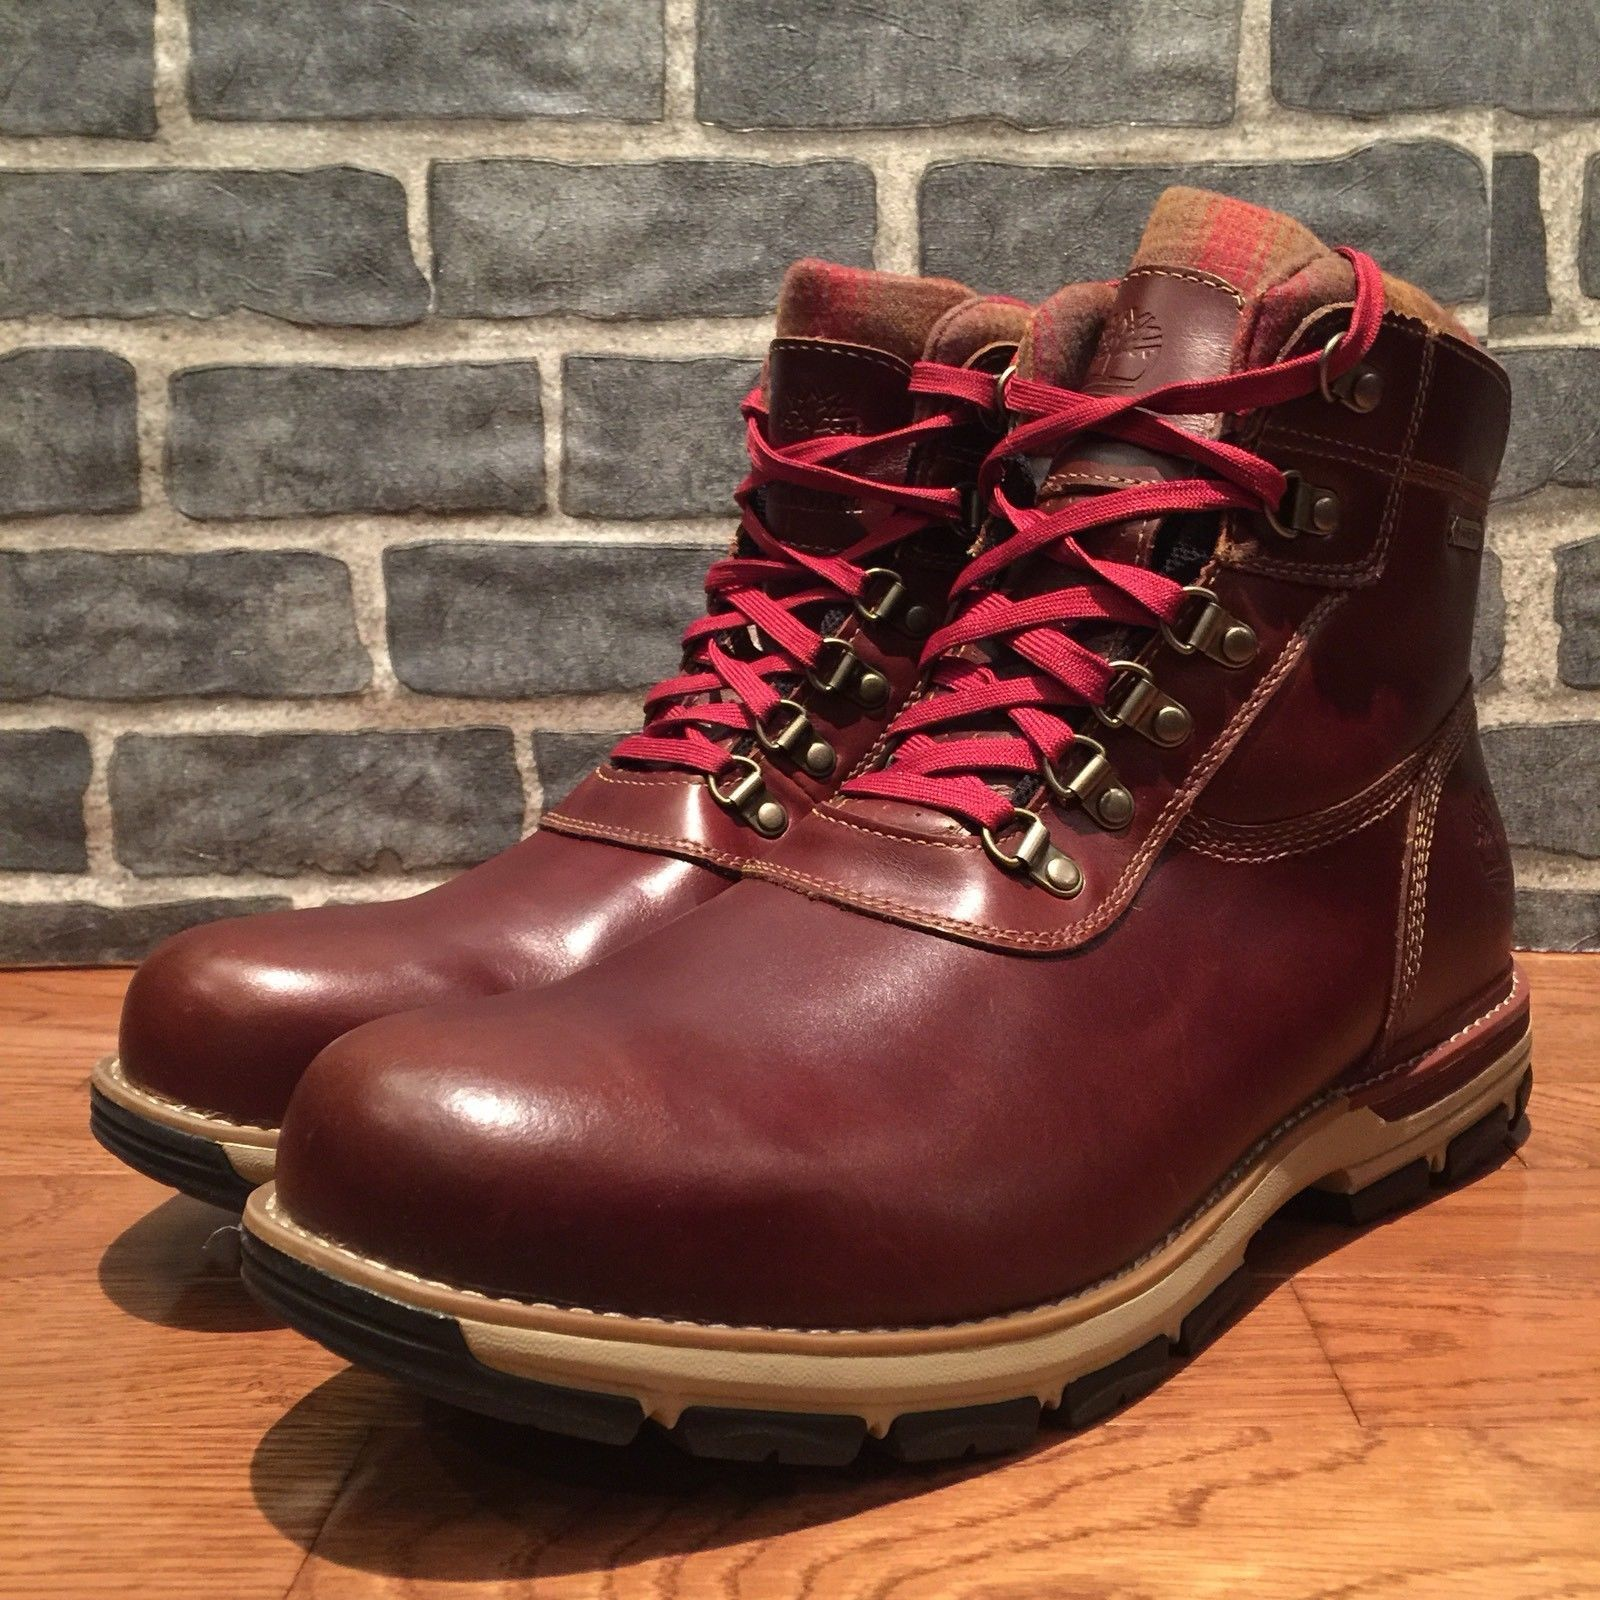 Timberland Heston Mid GORE TEX Insulated and 50 similar items